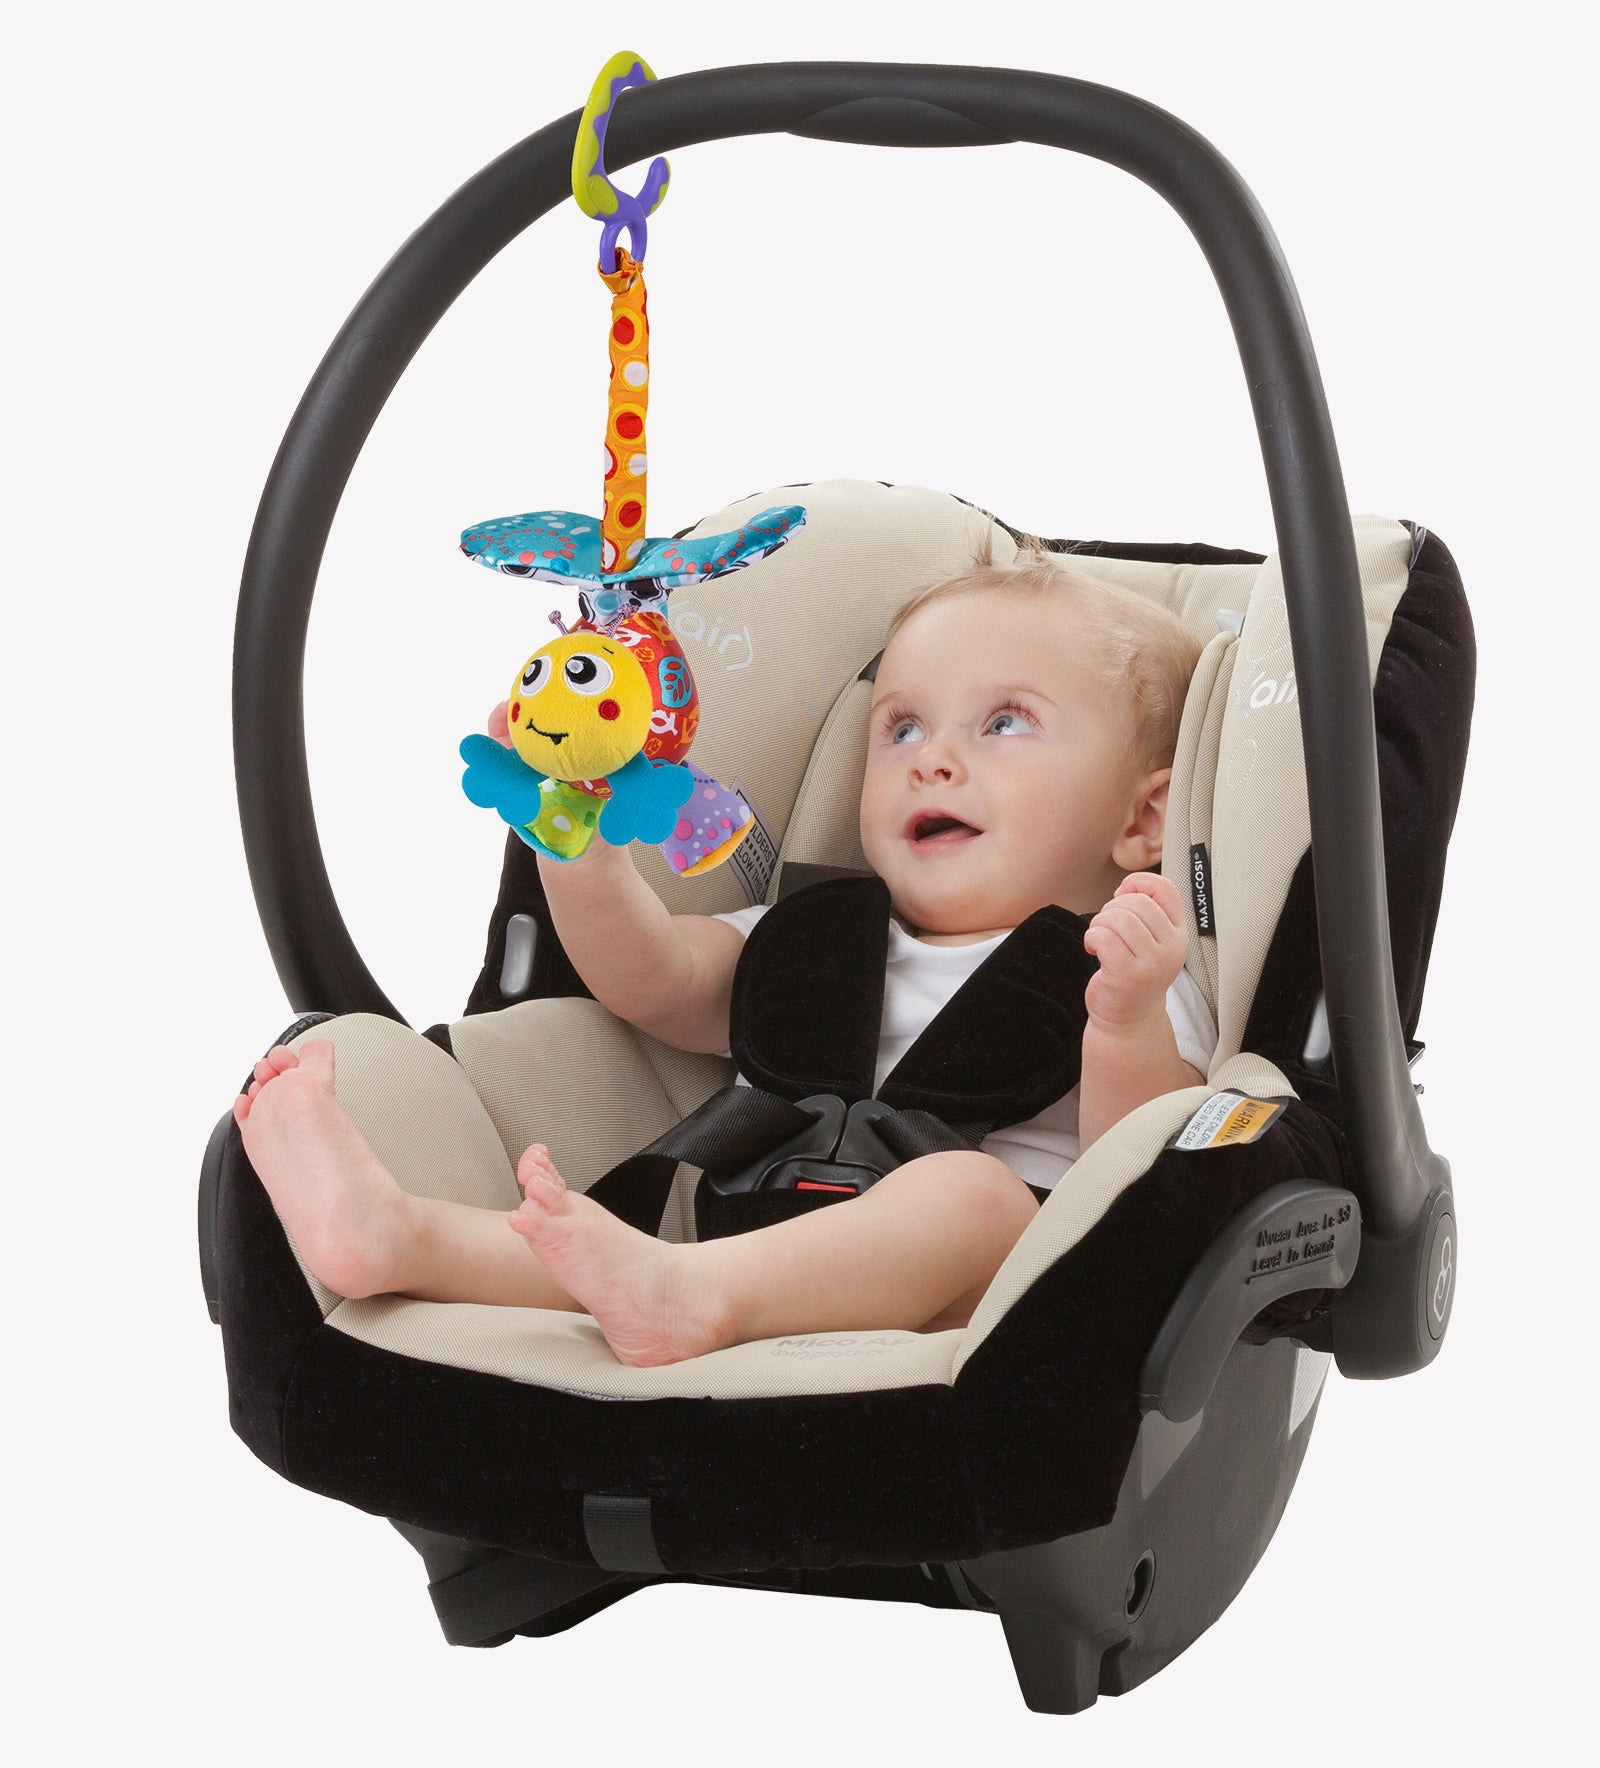 A baby boy is sitting inside a car seat with Playgro Mover Bee baby toy clipped on to it.